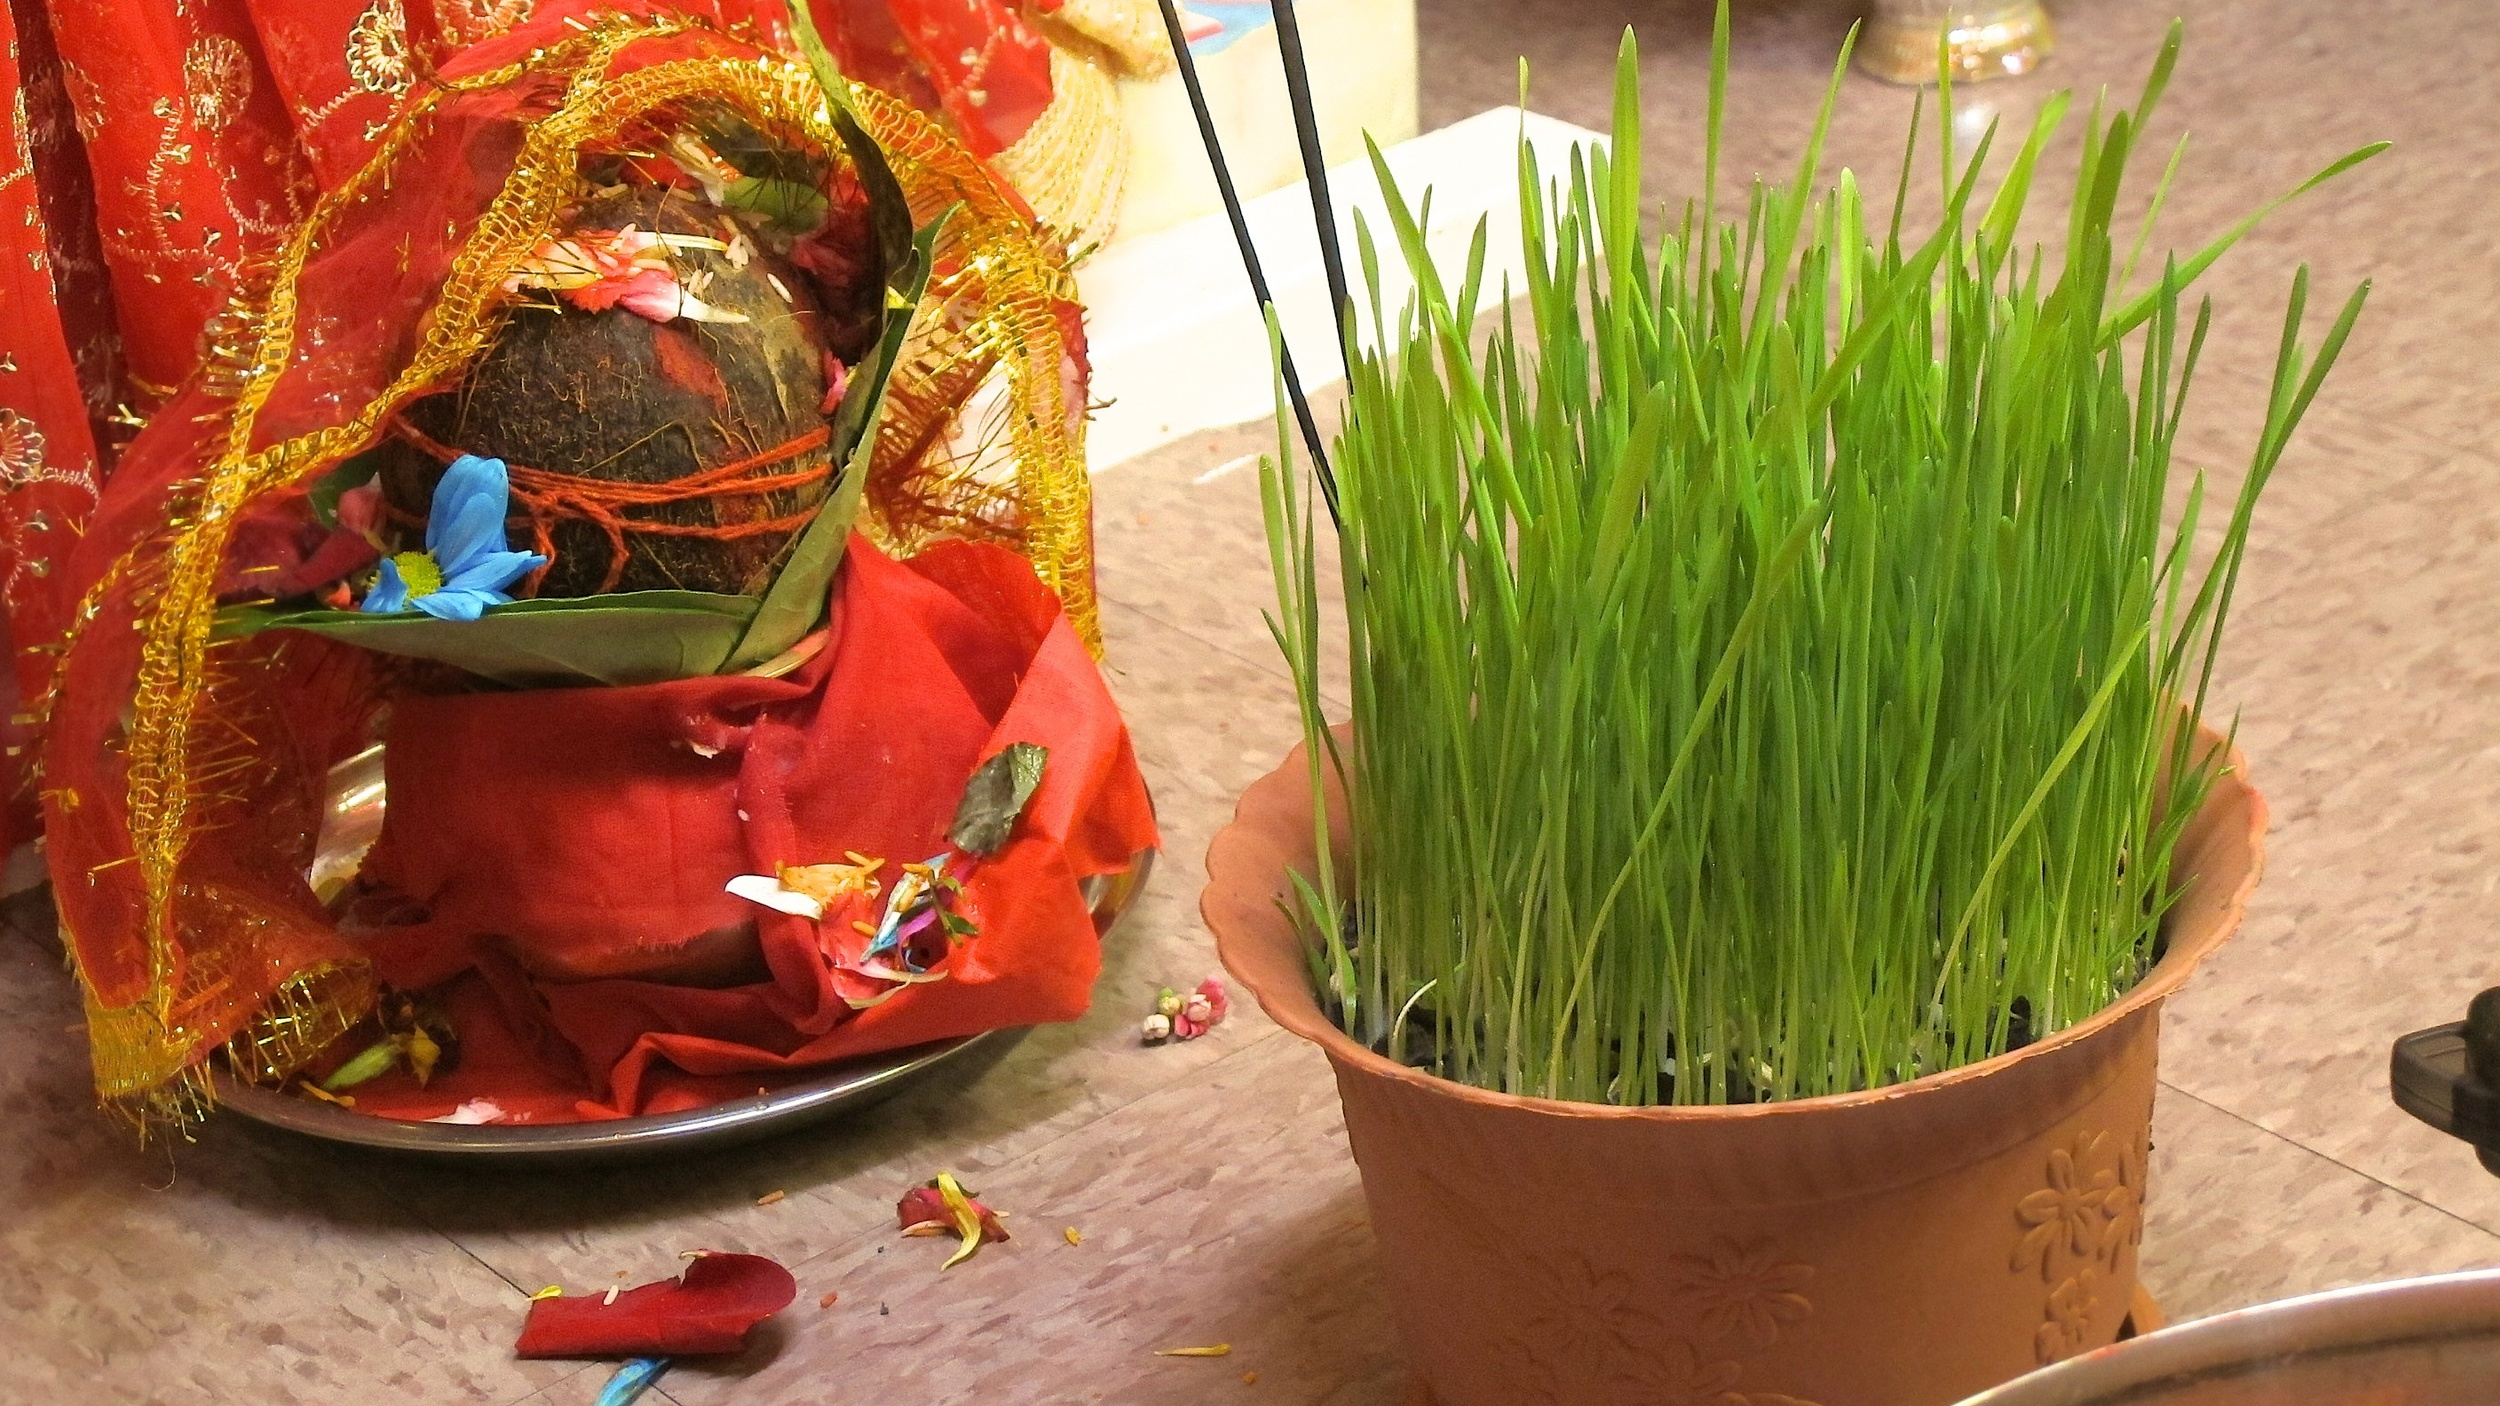 A coconut adorned in auspcious red cloth and covered in flowers symbloizing pooja to deity.